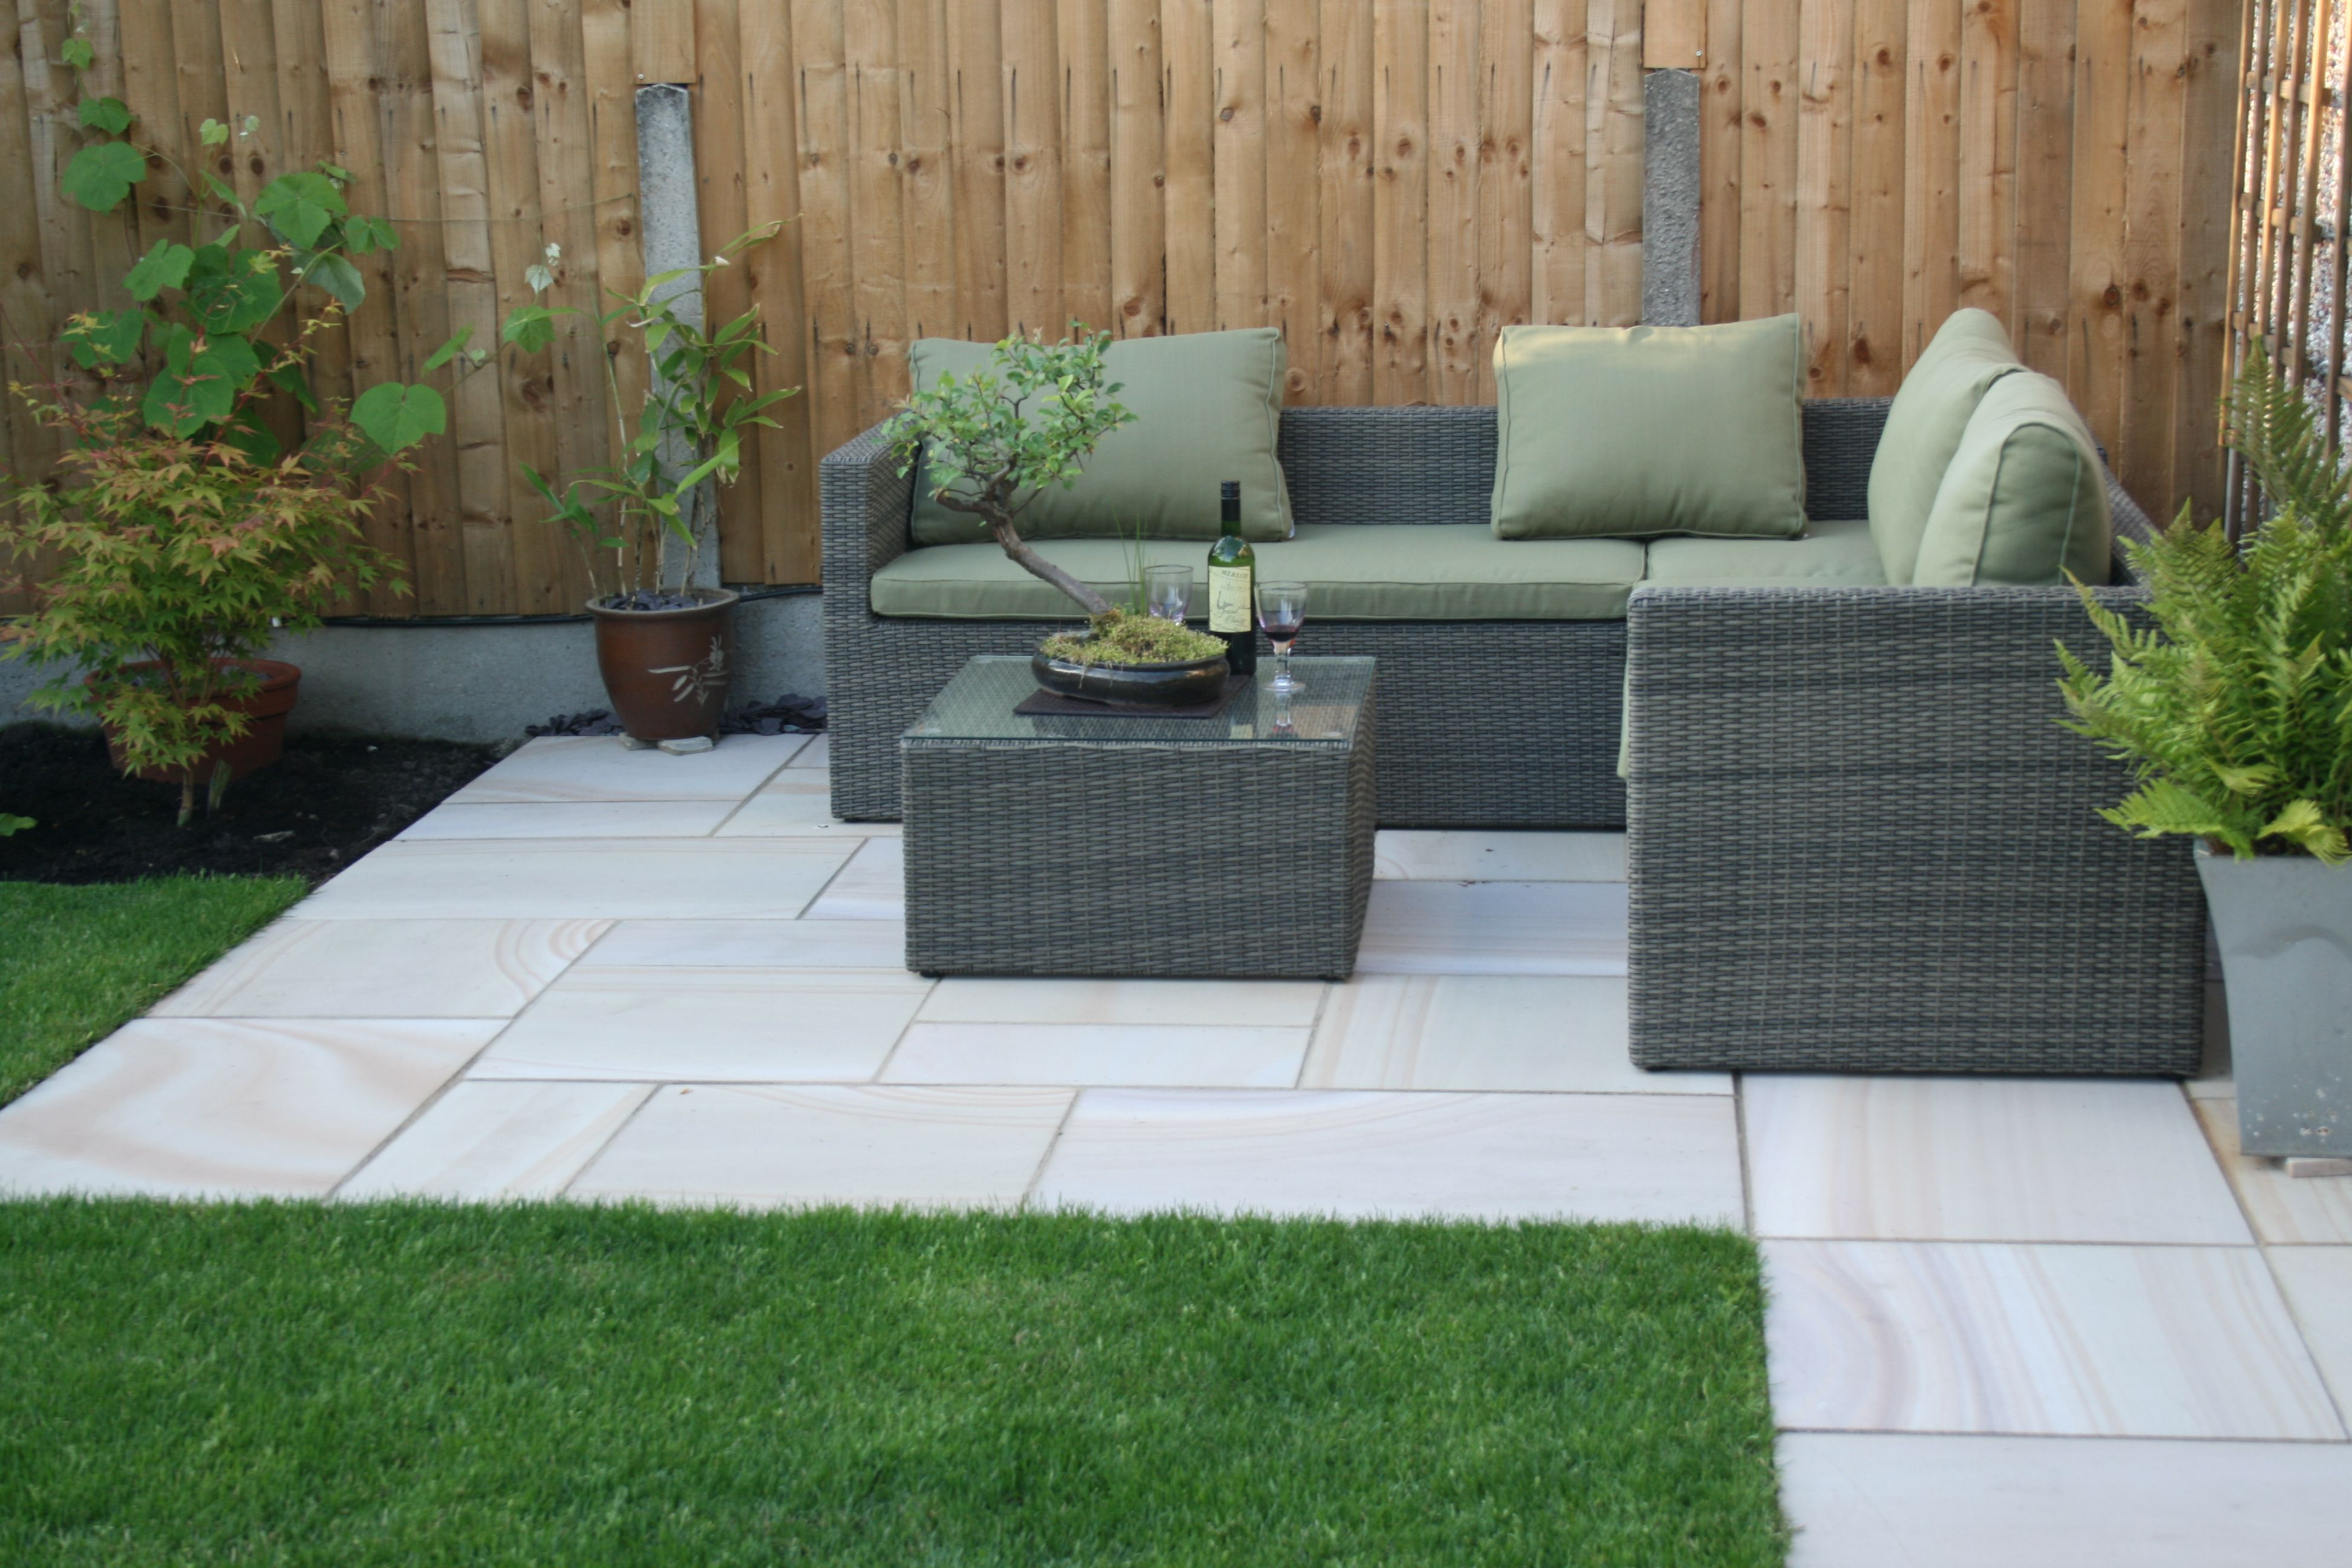 Budworth Sawn Sandstone Used To Create A Relaxing Corner Thanks To Derek Of Oliver Paving Widnes Fo Patio Garden Design Small Patio Garden Corner Patio Ideas